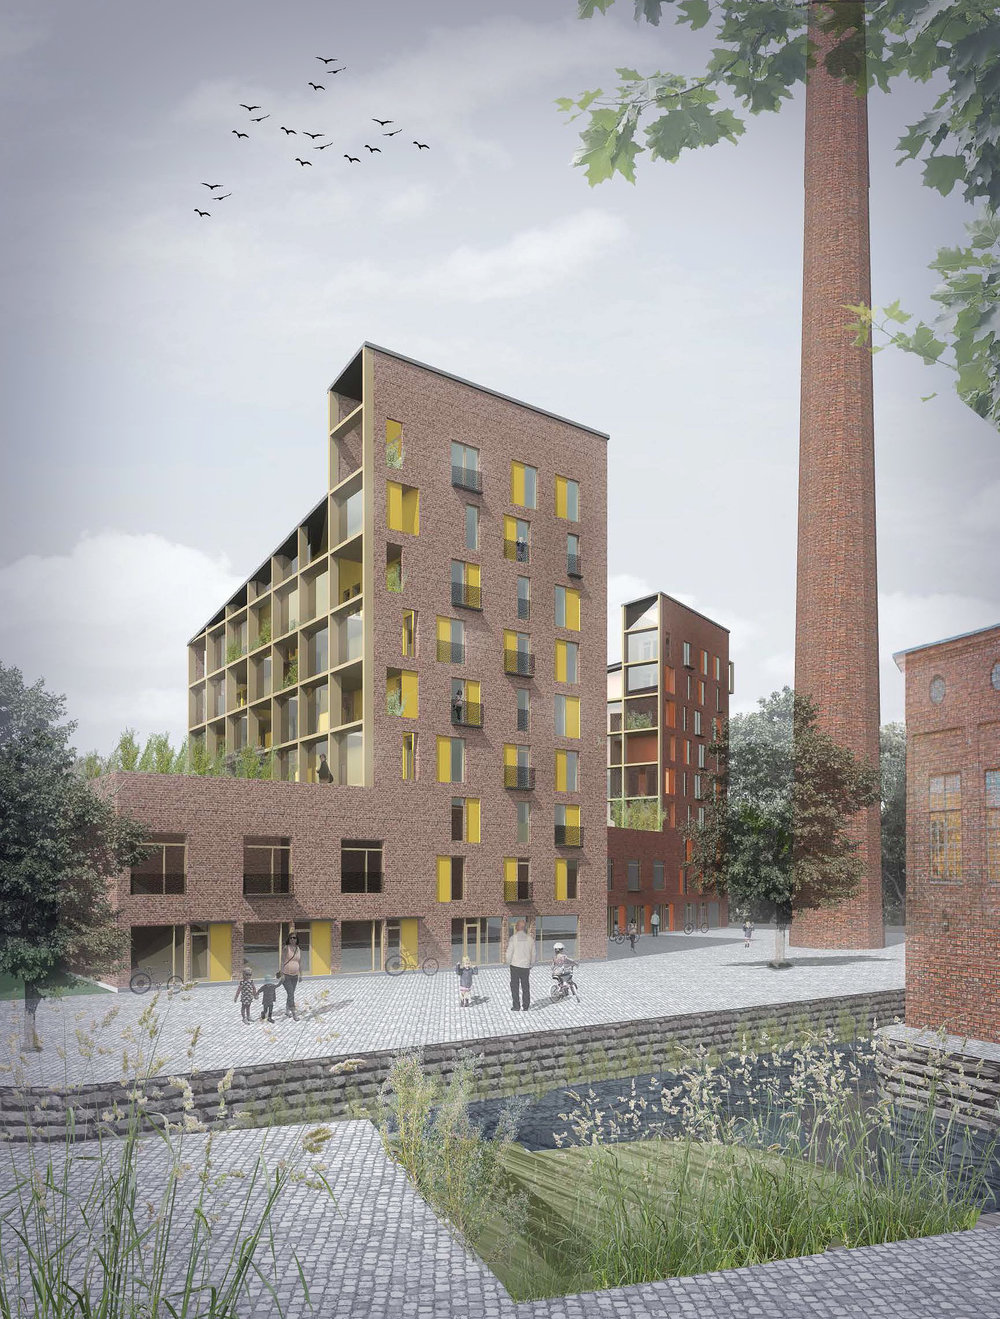 Kangas is the most significant urban development project in the city of Jyväskylä. Courtesy UKI Architects